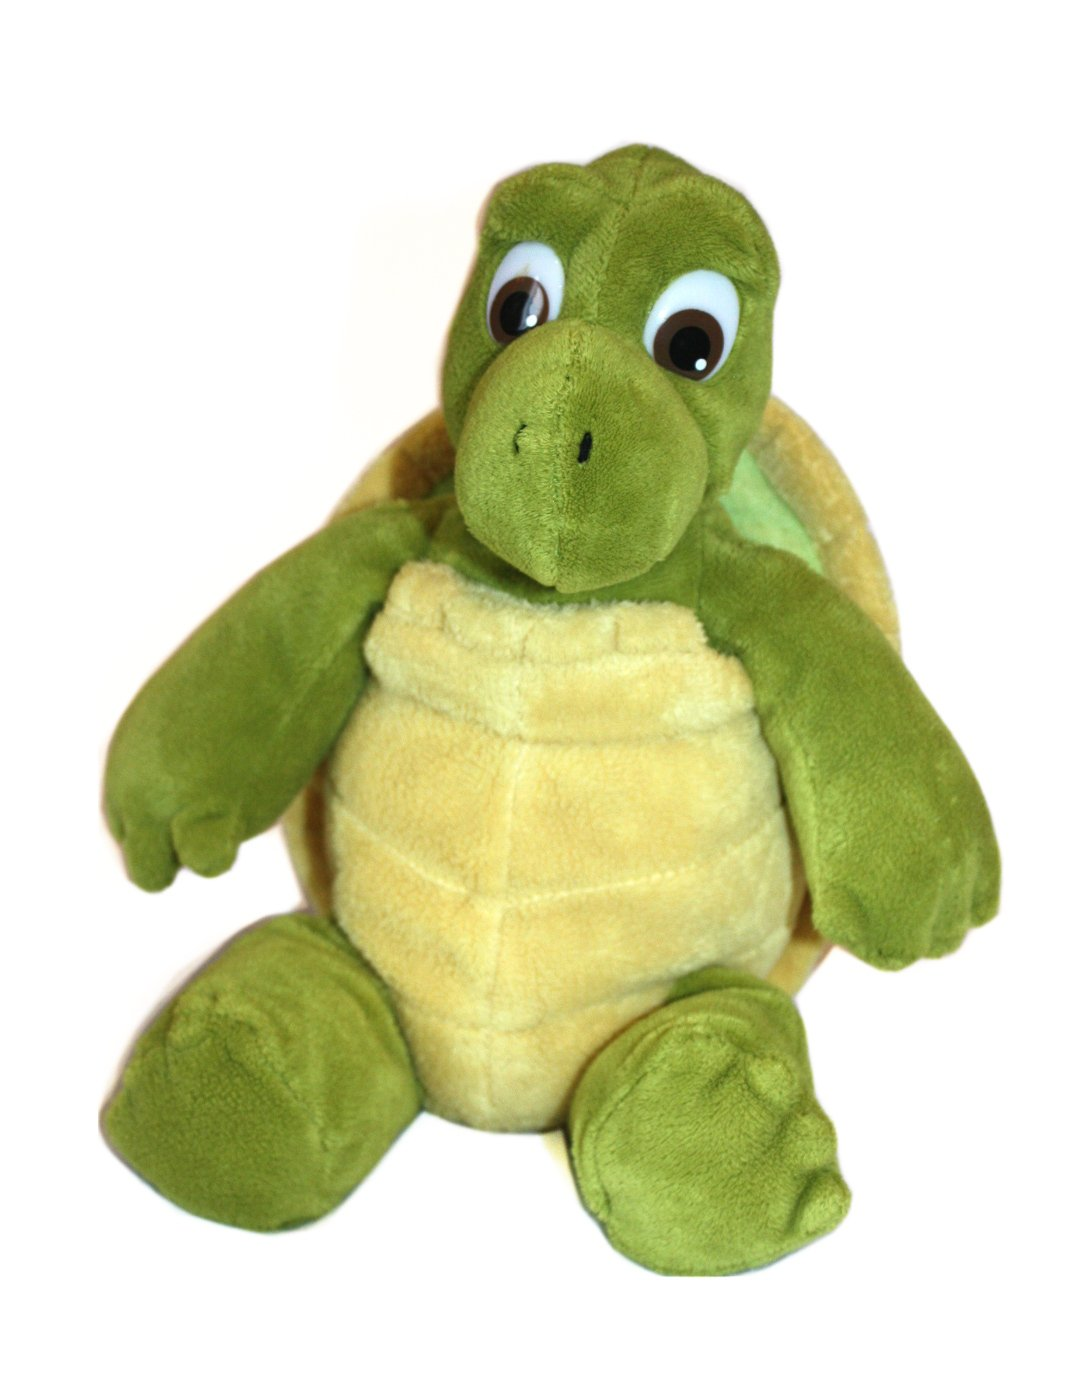 Uncategorized Verne The Turtle amazon com kohls verne the turtle over hedge plush toys games